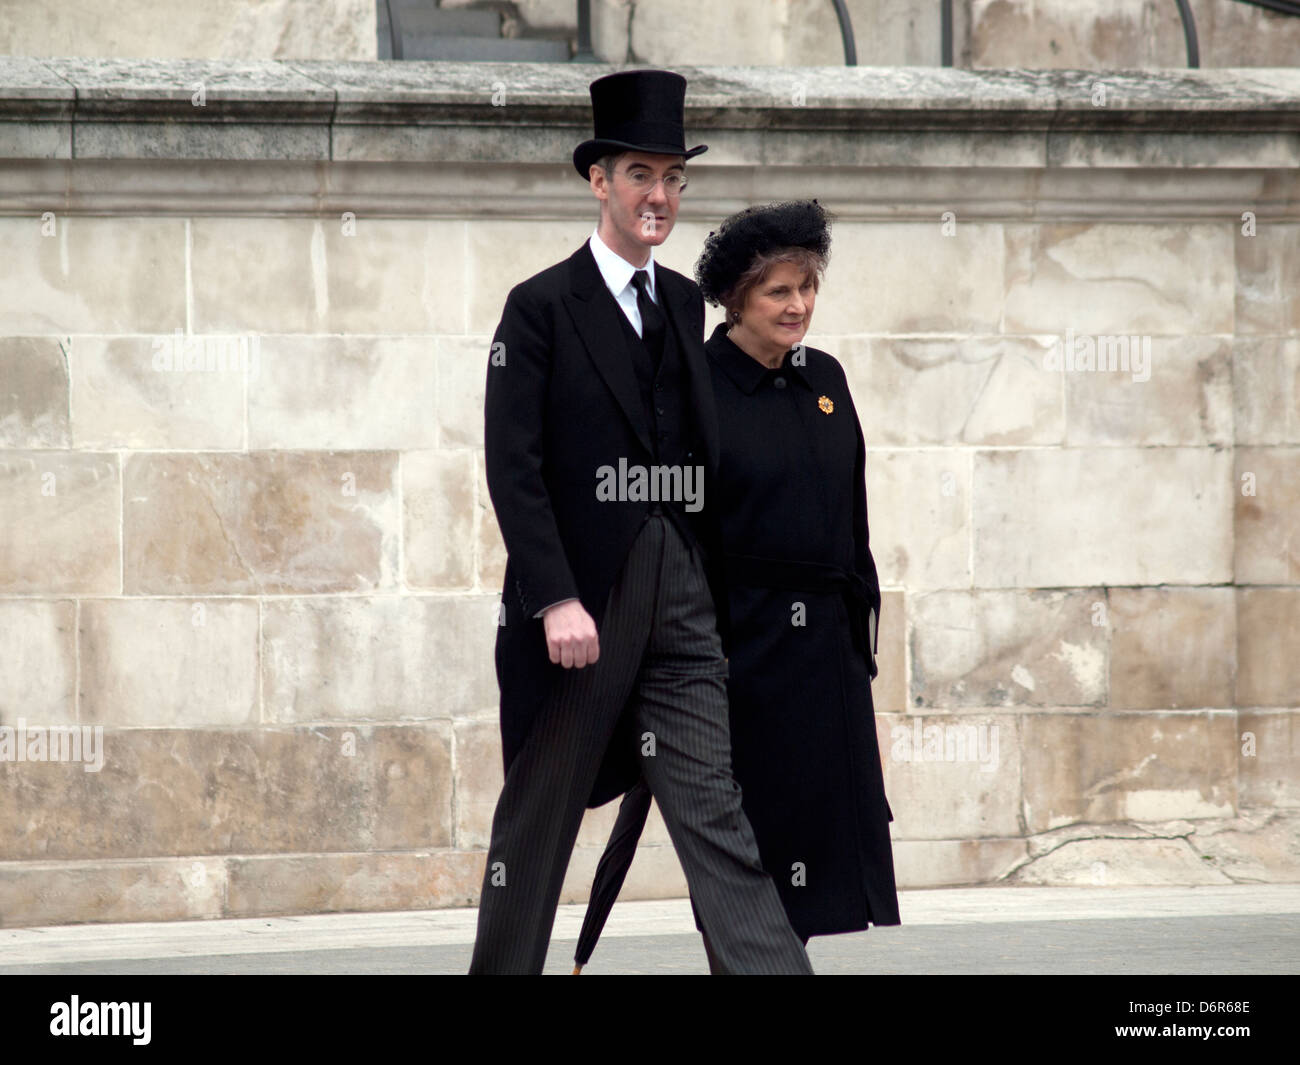 Mourners at the state funeral of Margaret Thatcher - Stock Image